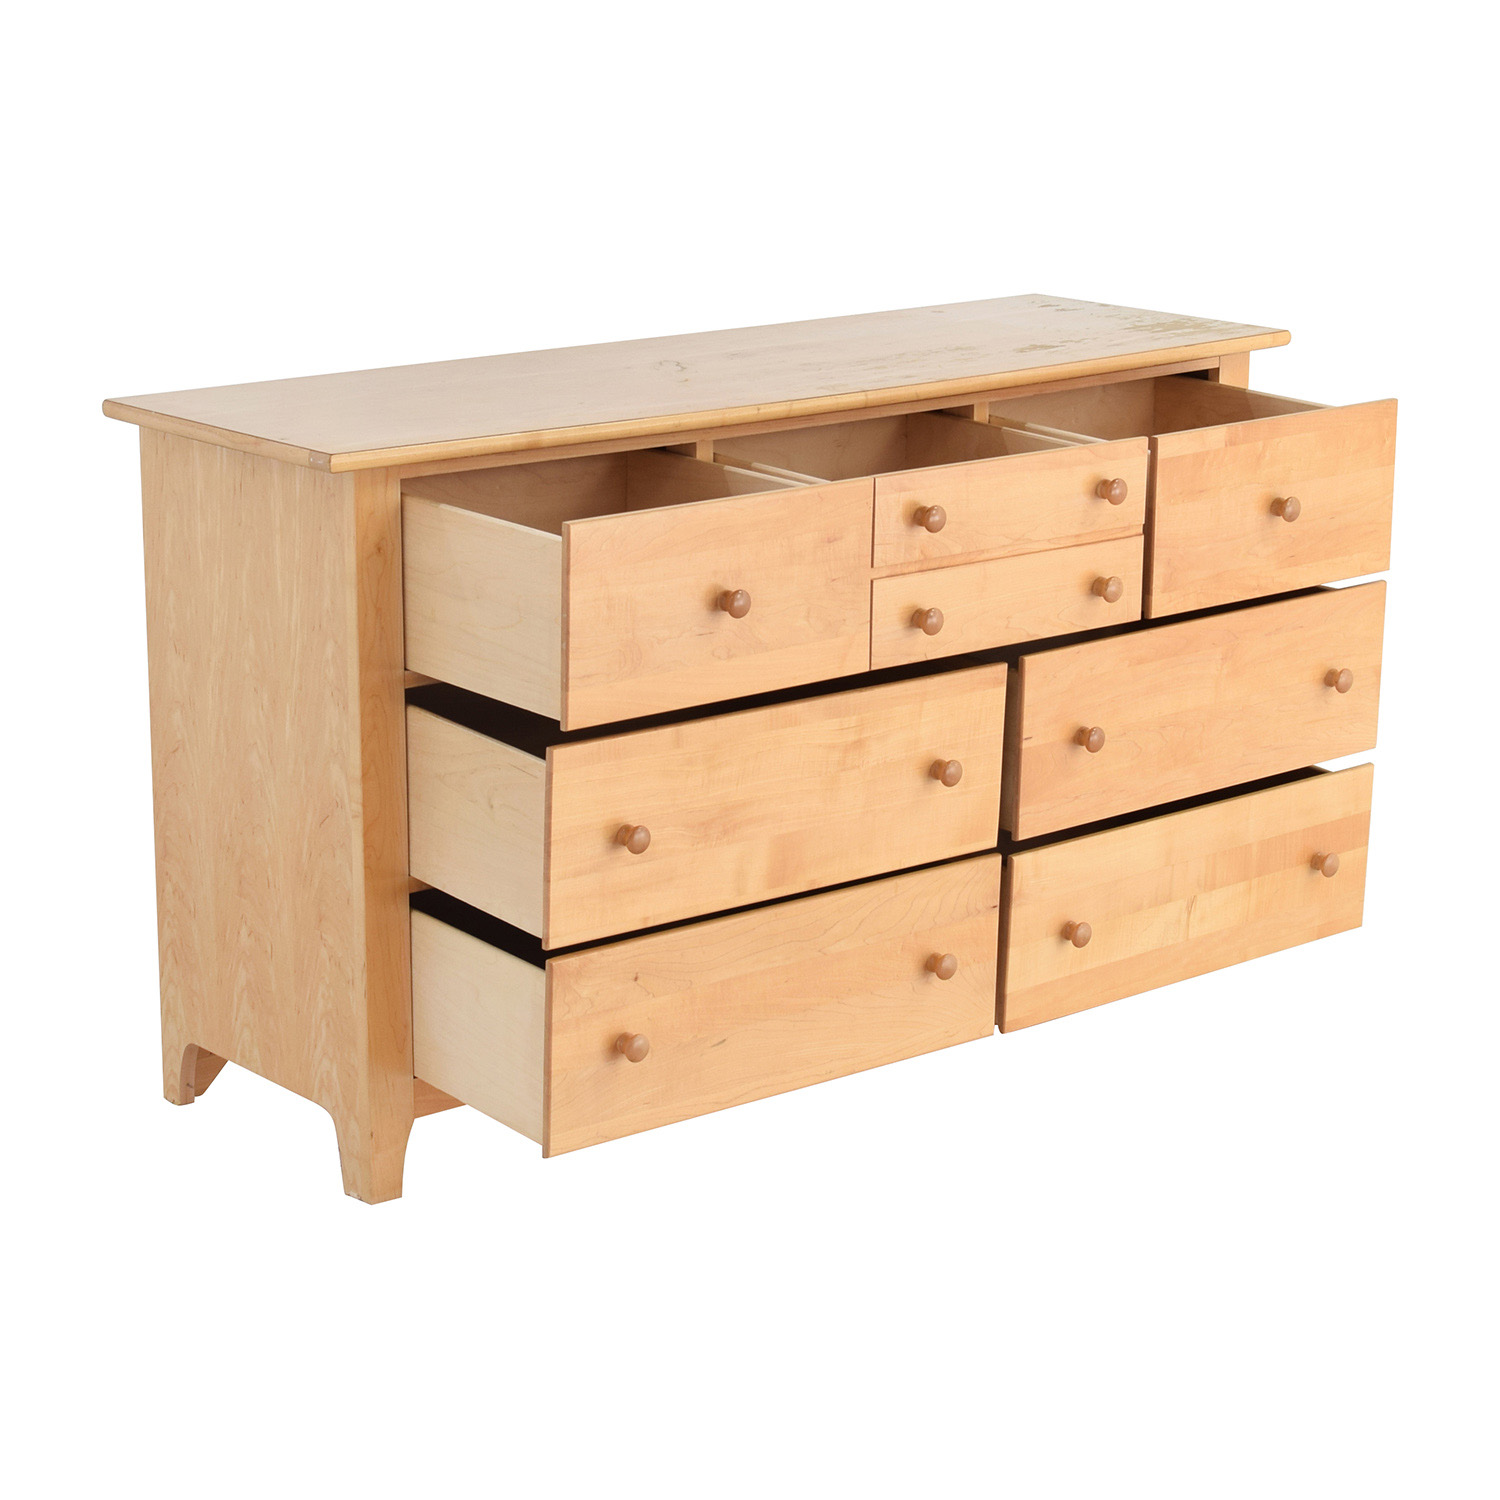 Maple Wood Furniture ~ Used wood dressers for sale bestdressers